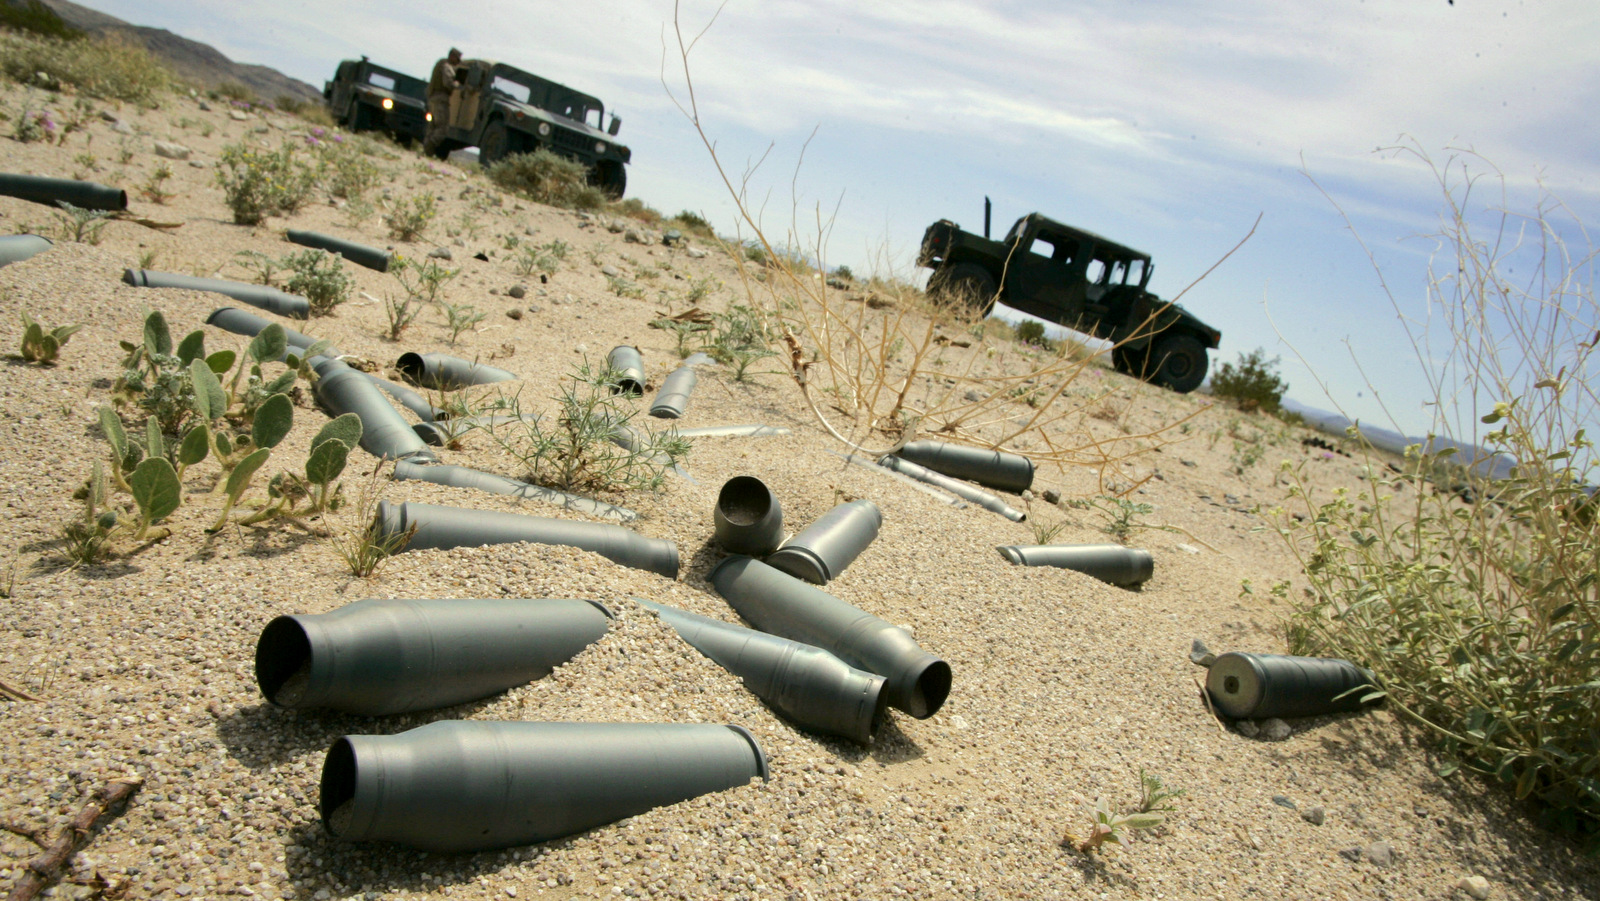 Spent shell casings from firing practice litter the desert of the U.S. Marine Corps' Air Ground Combat Center at Twentynine Palms, California. (AP/Reed Saxon)